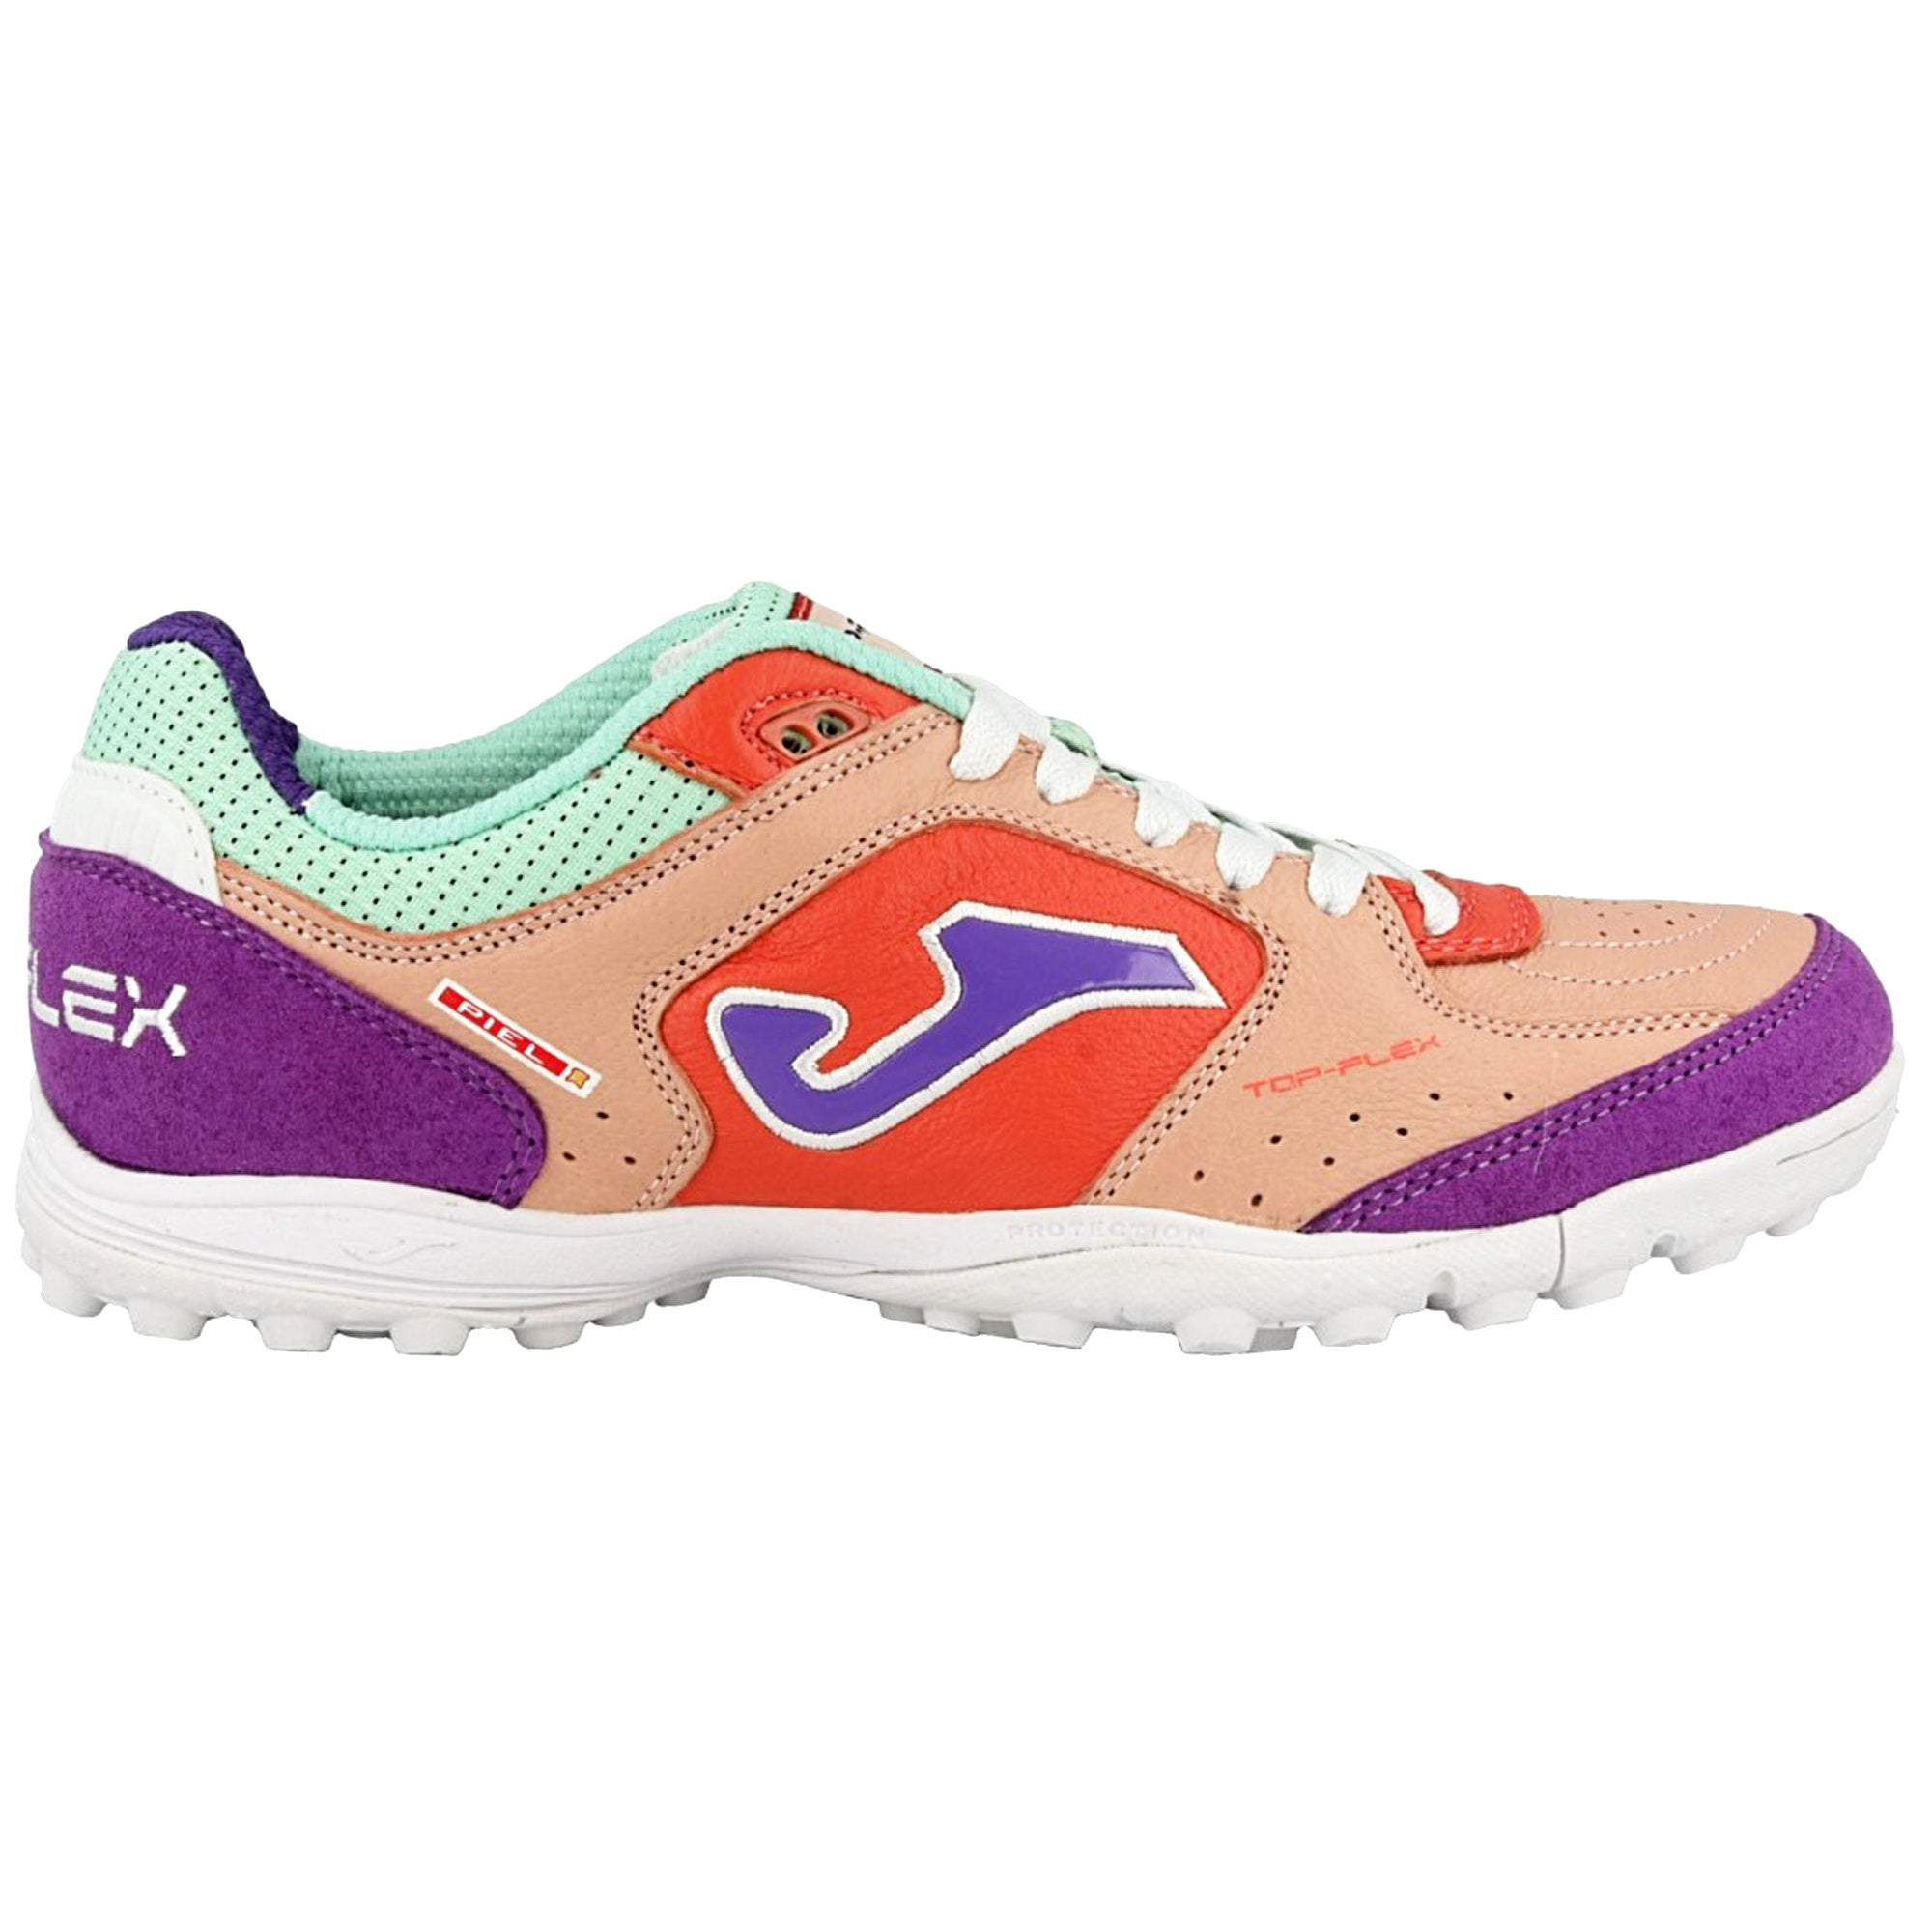 TOP FLEX 816 ROSA-MORADO TURF